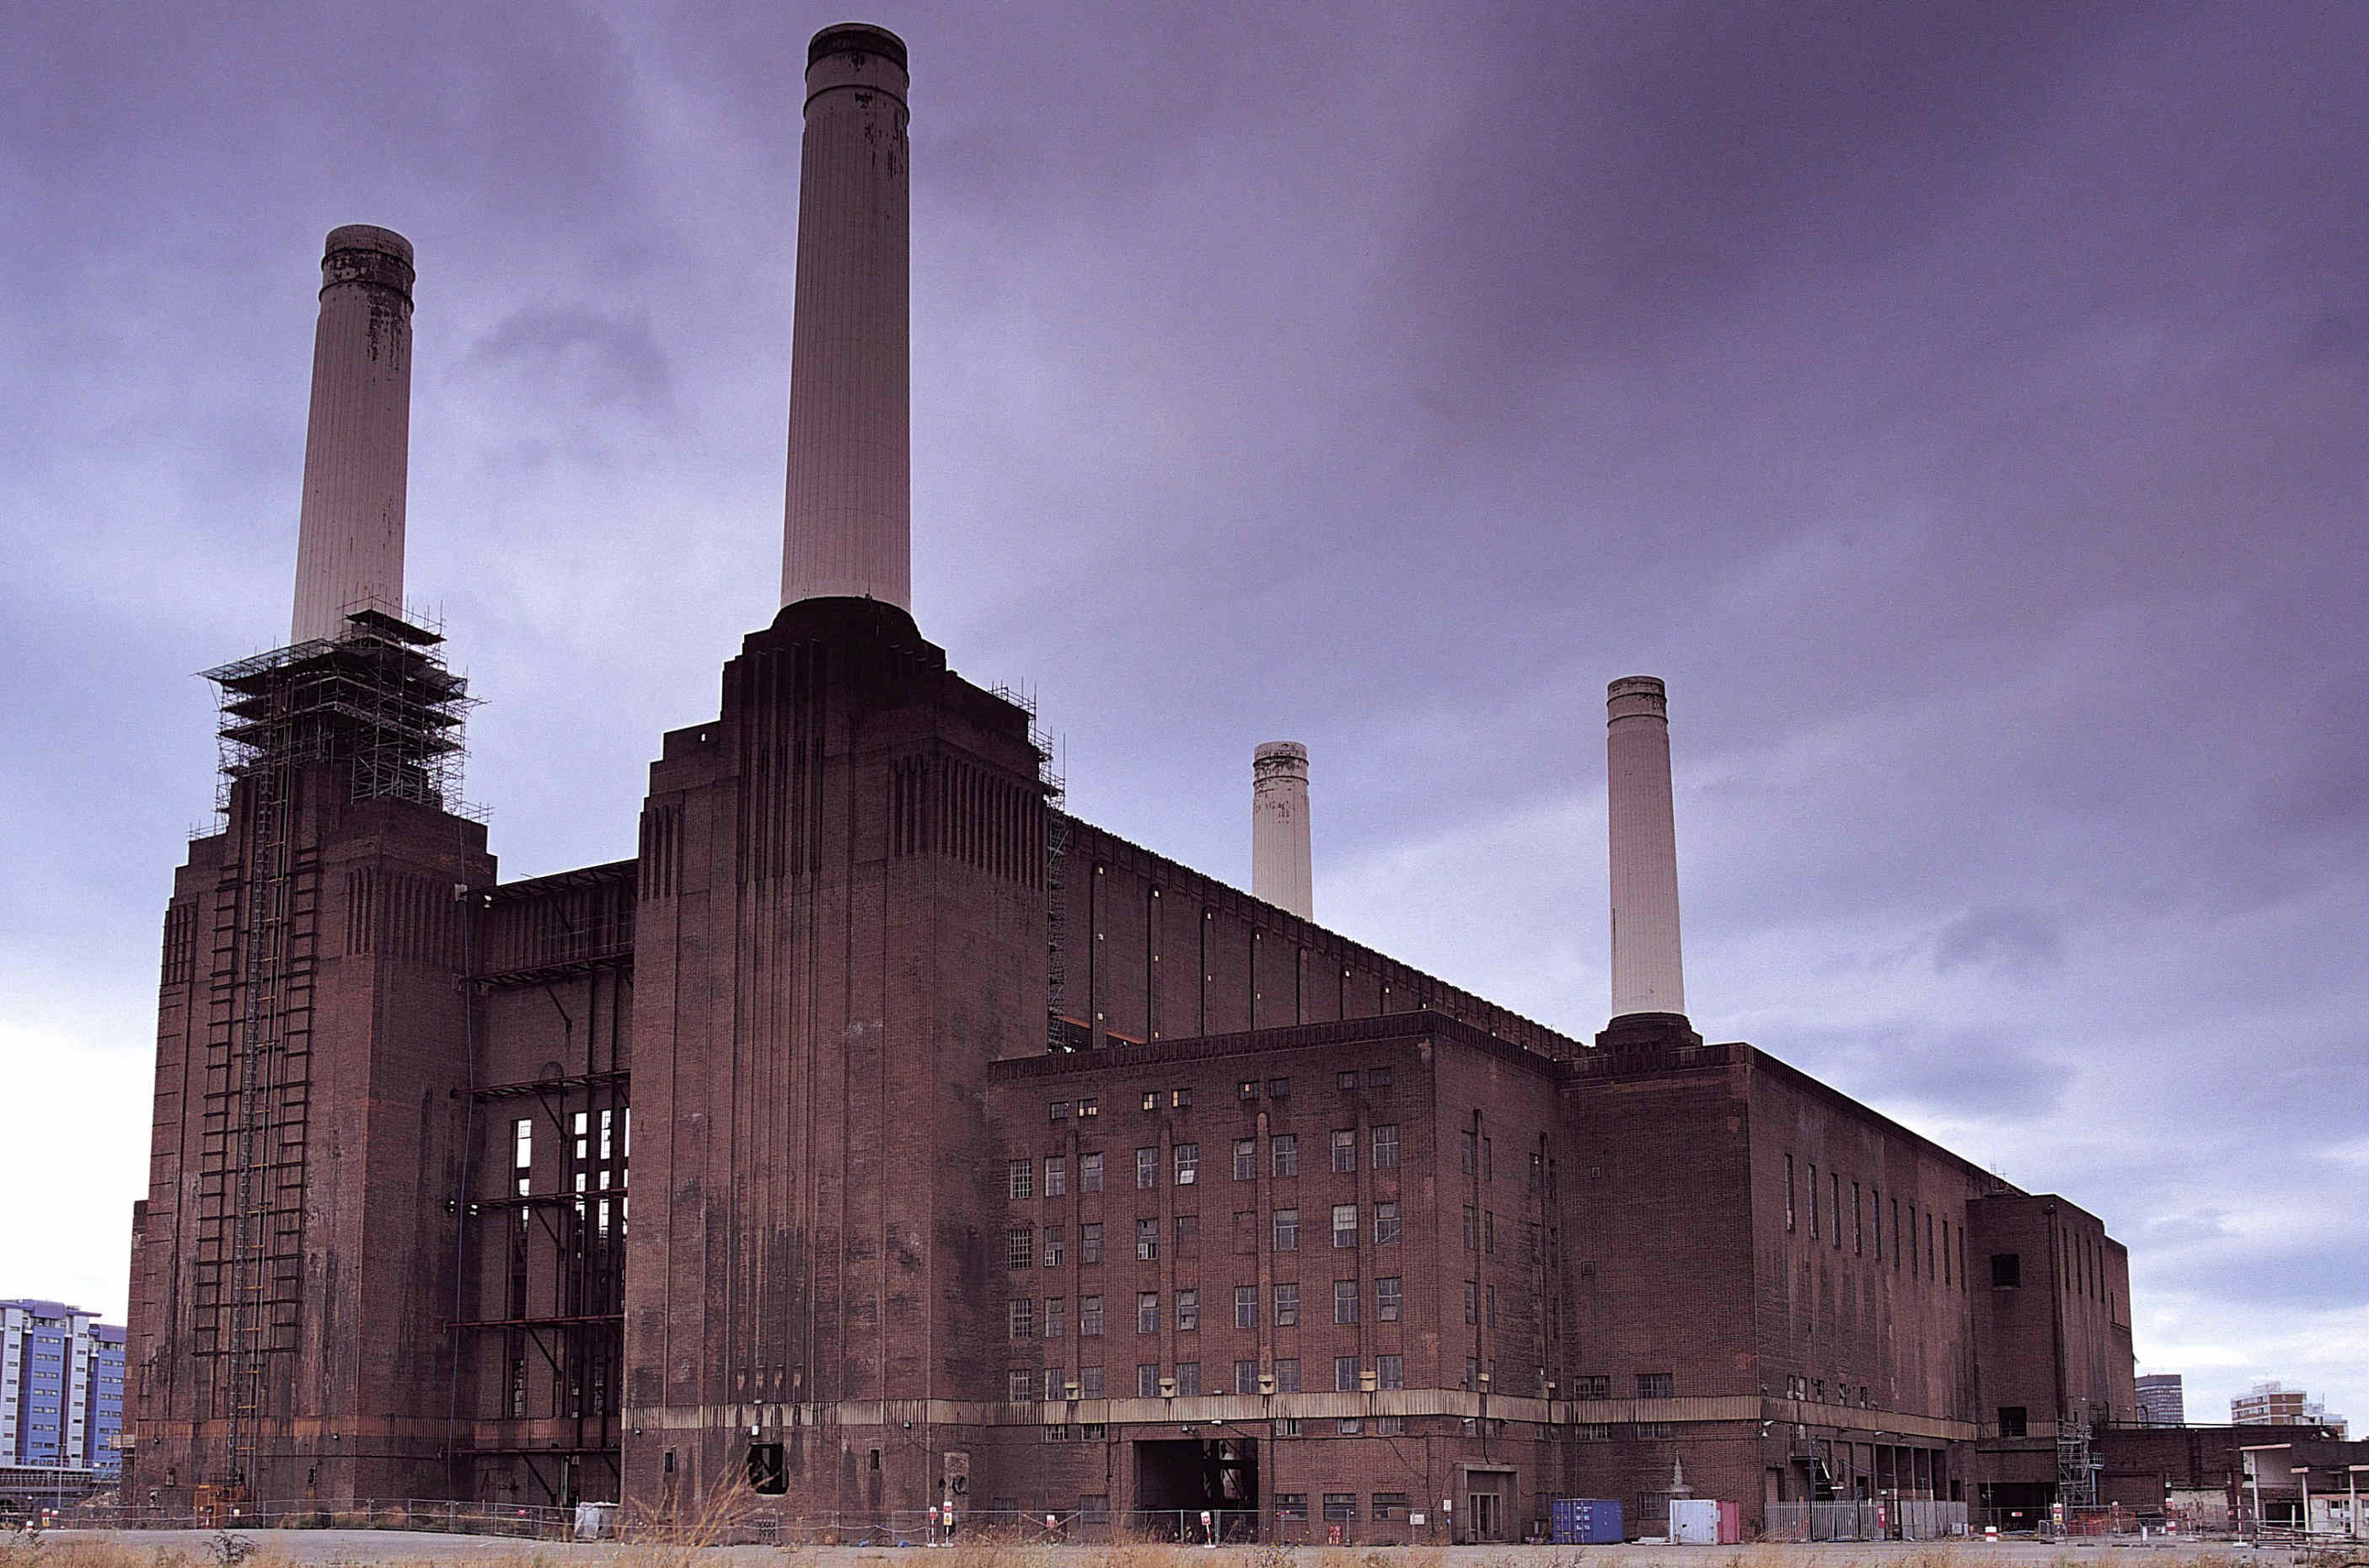 Ten things you didn't know about Battersea Power Station